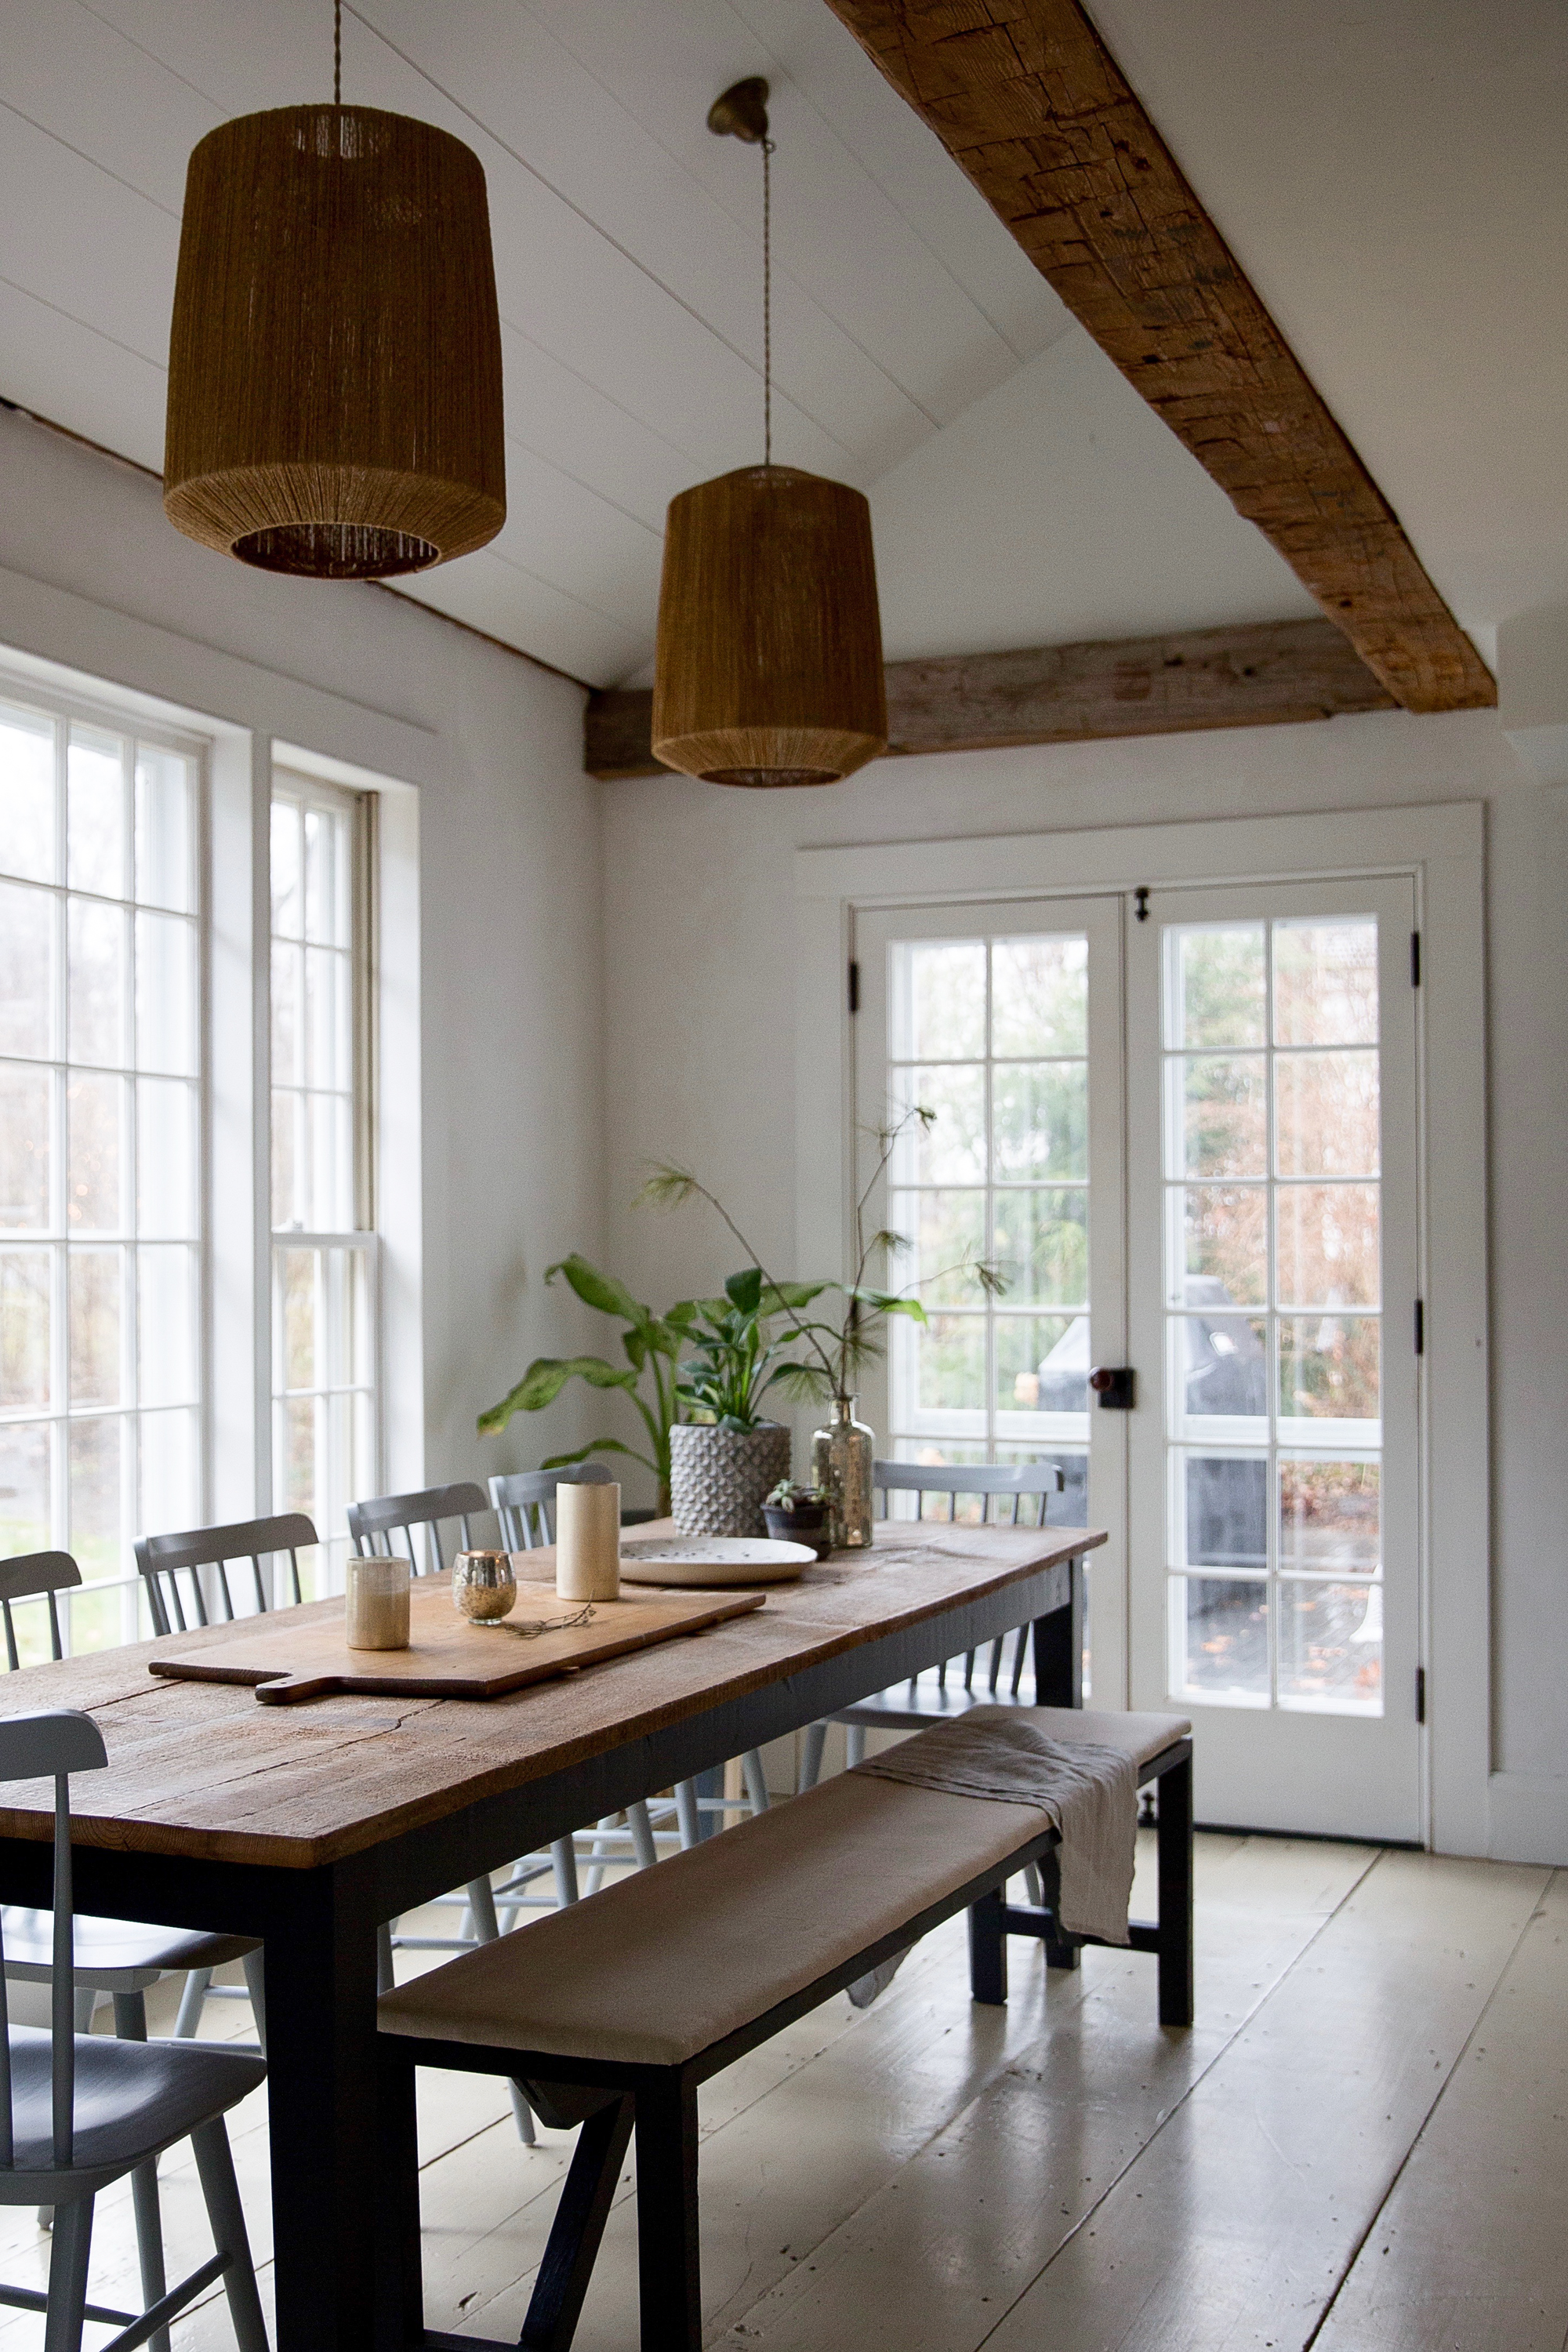 Jersey Ice Cream Co. & Local Milk from Remodelista | old farmhouse kitchen with amazing wood beams!